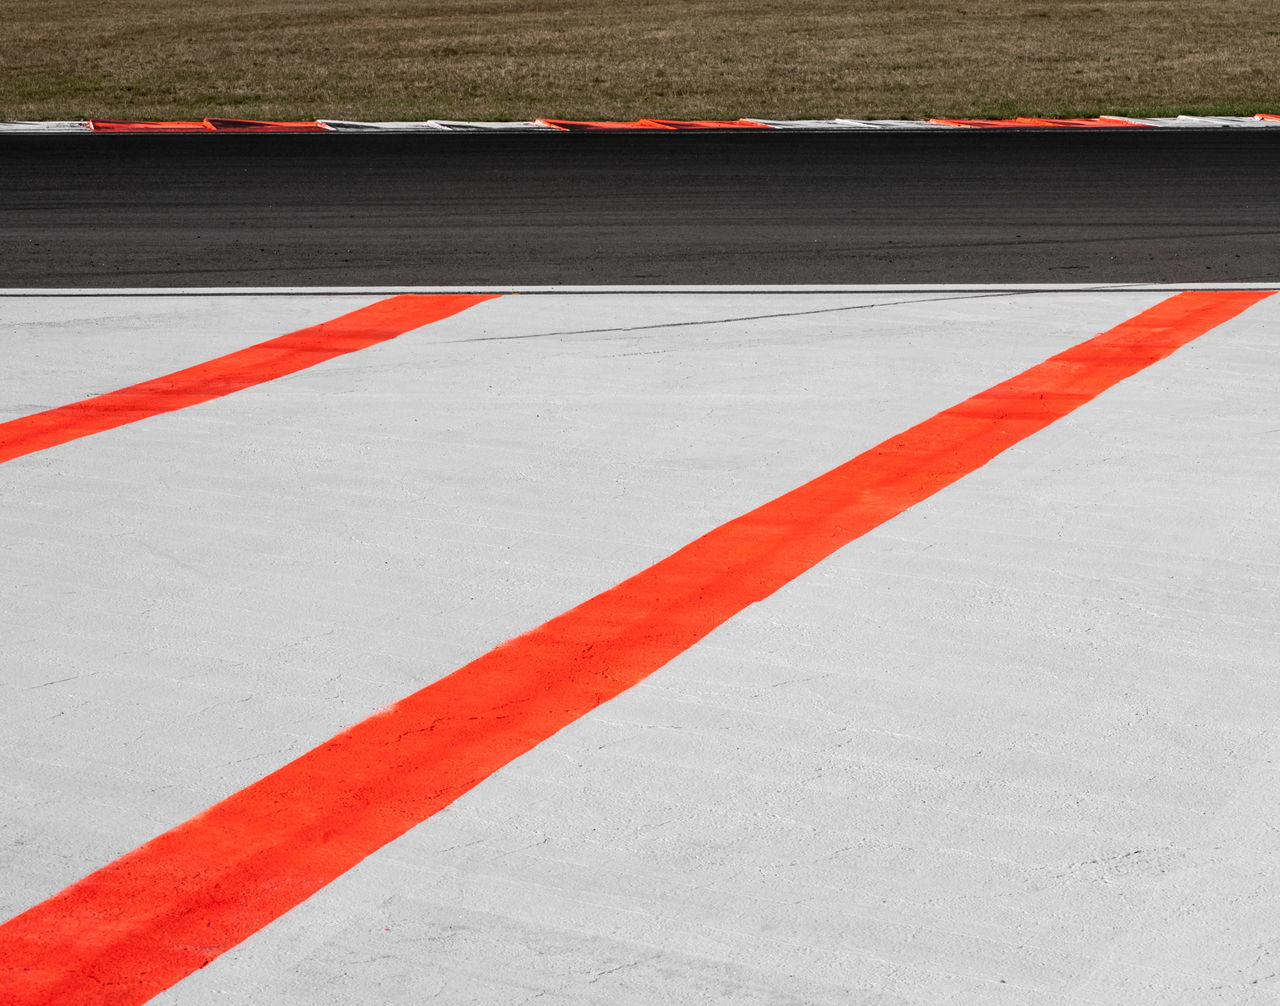 Red And White Marking On Sports Track